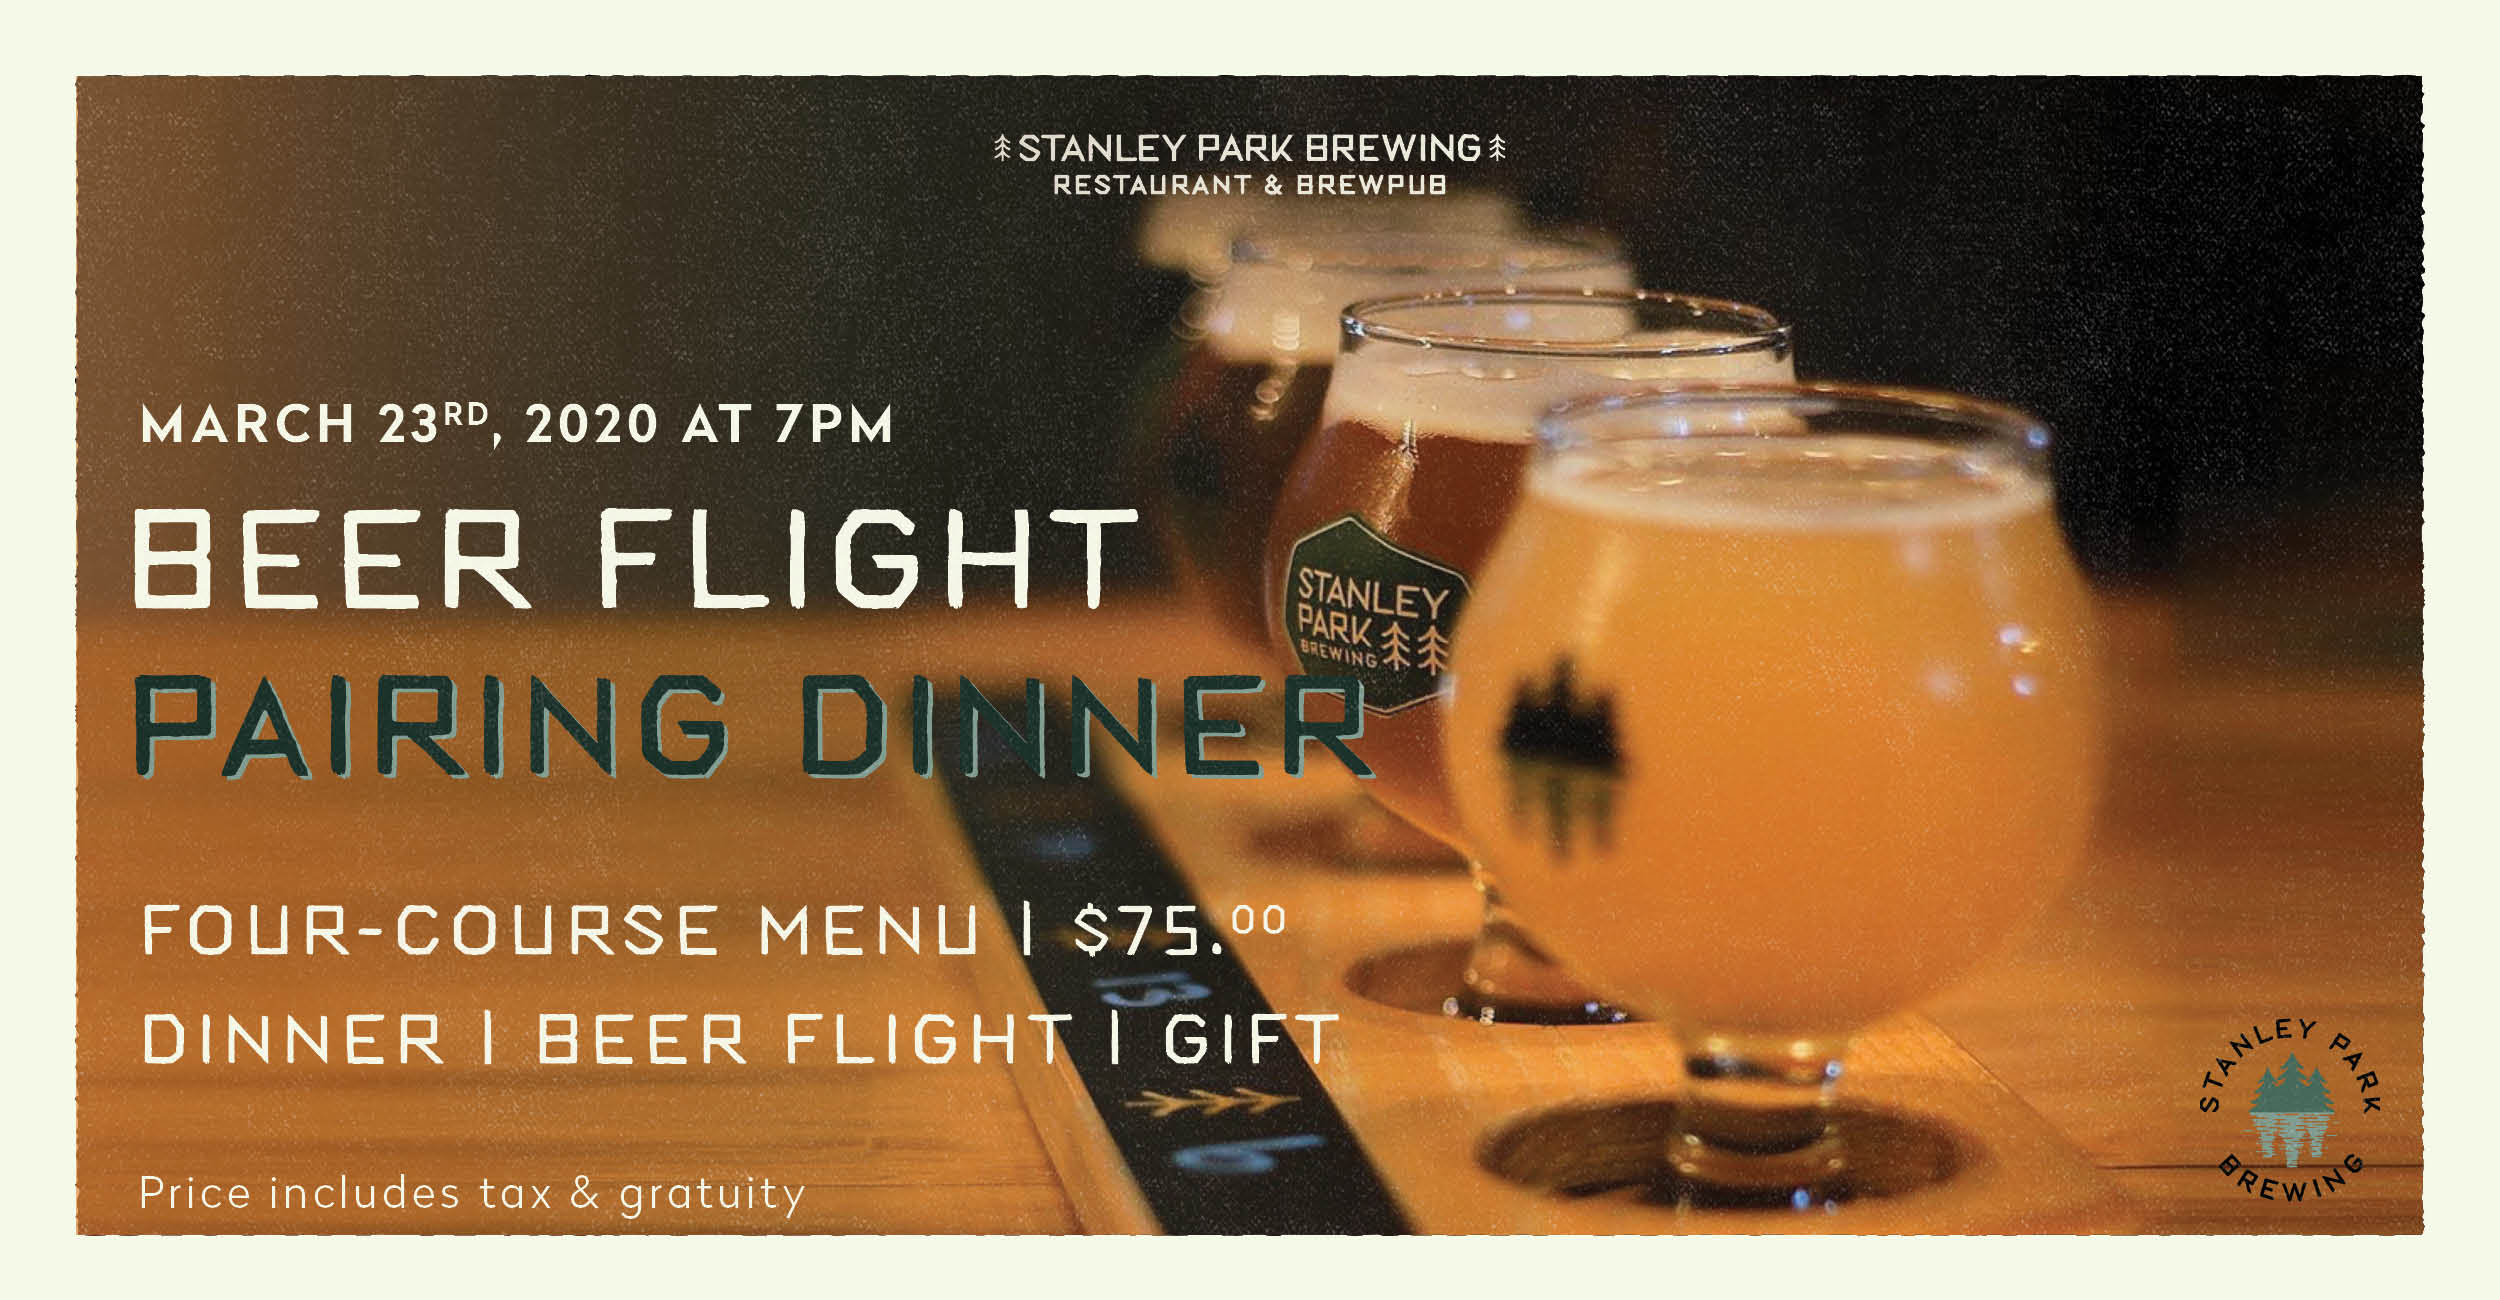 Beer Flight Pairing Dinner